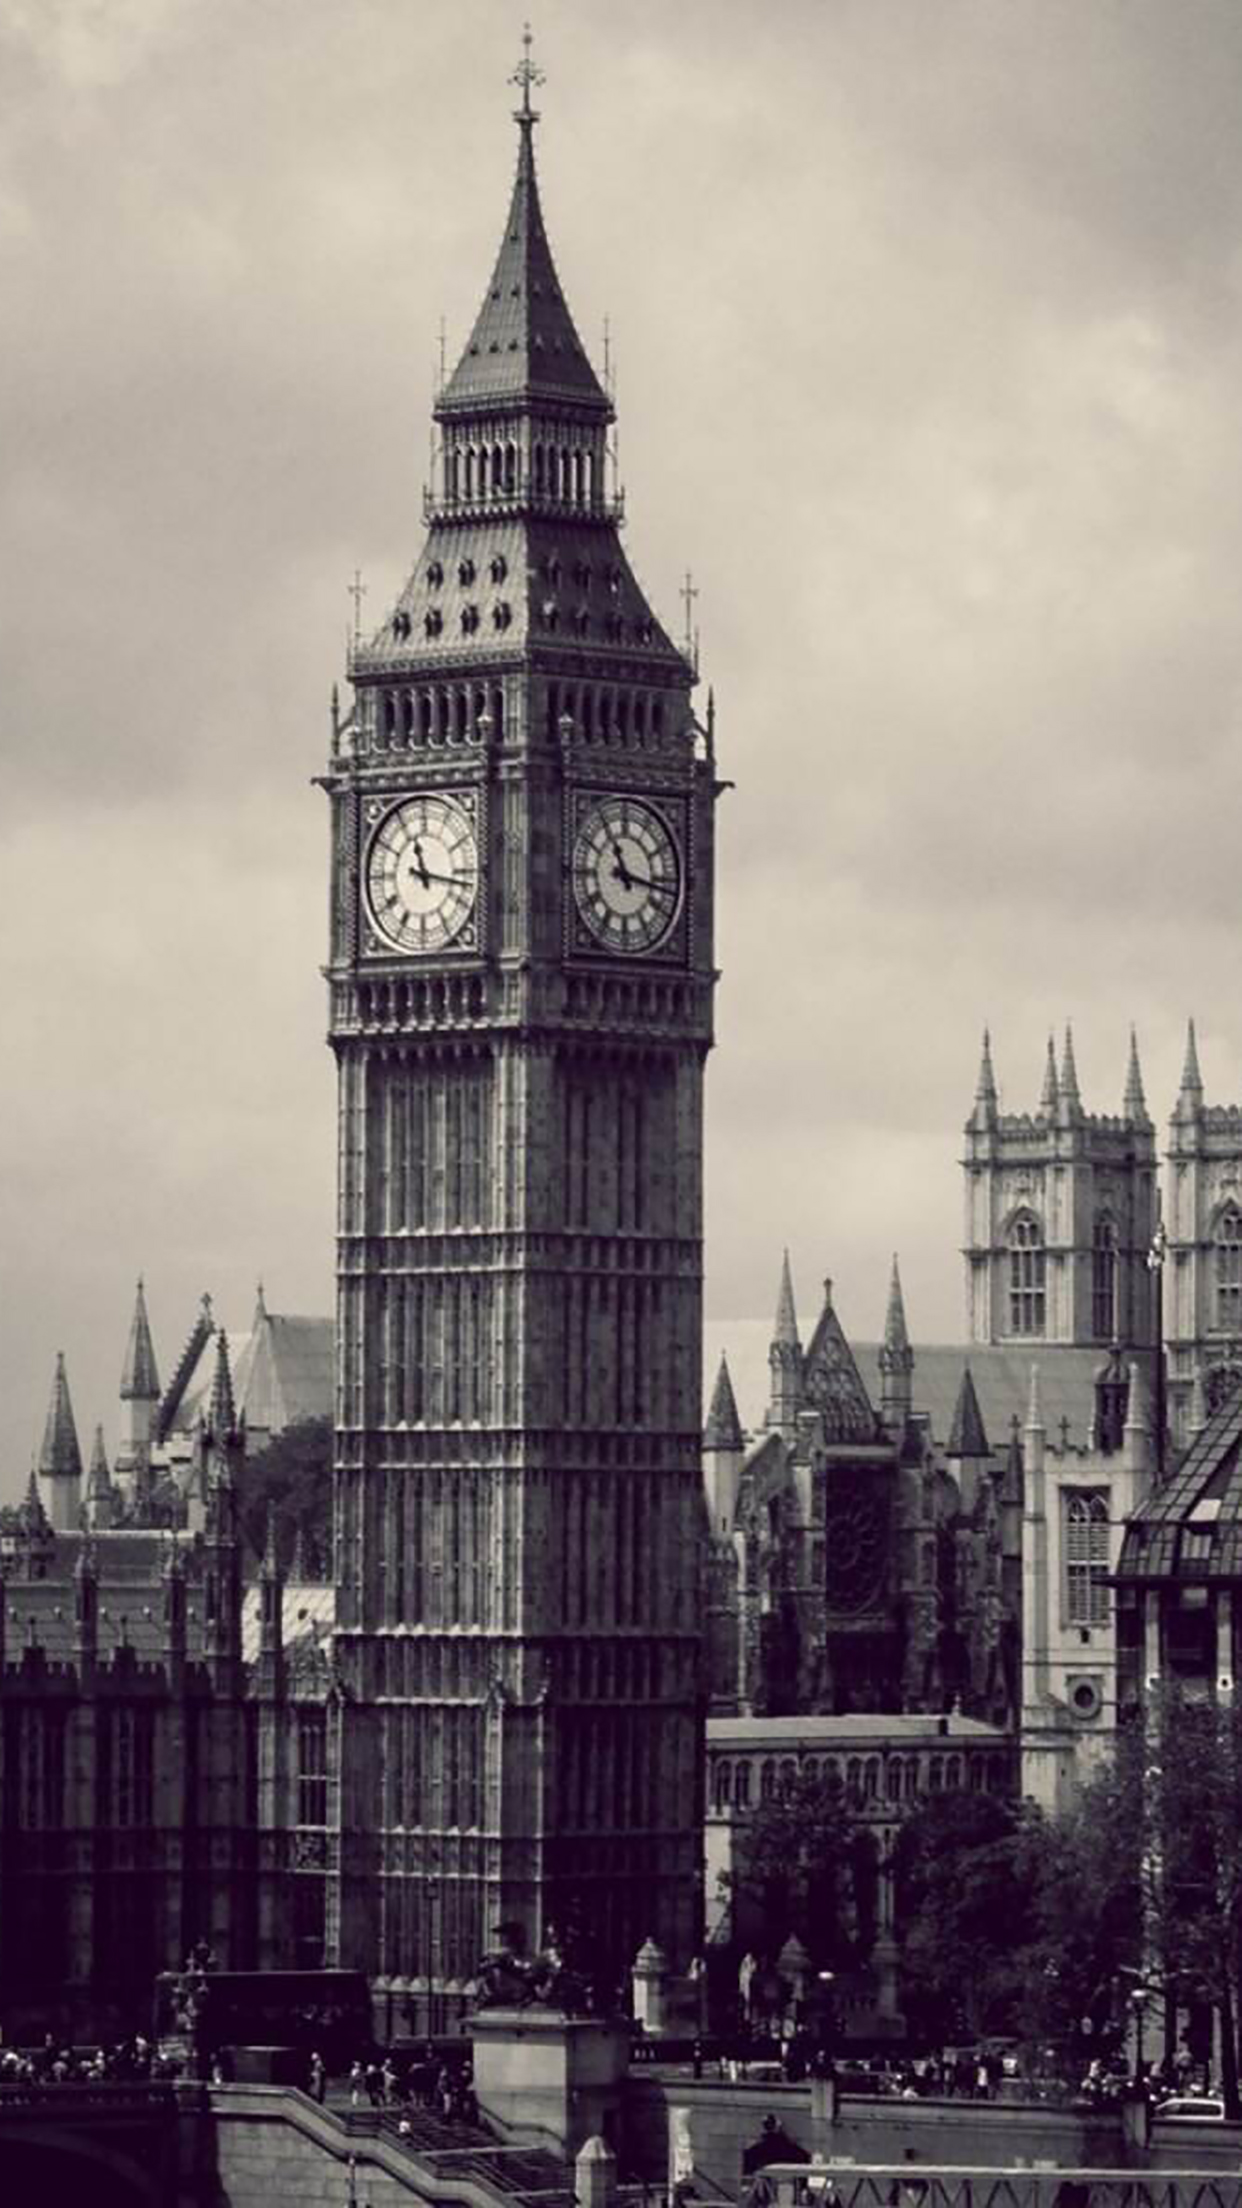 Free Ipod Wallpapers Hd Monuments Big Ben Wallpaper For Iphone X 8 7 6 Free